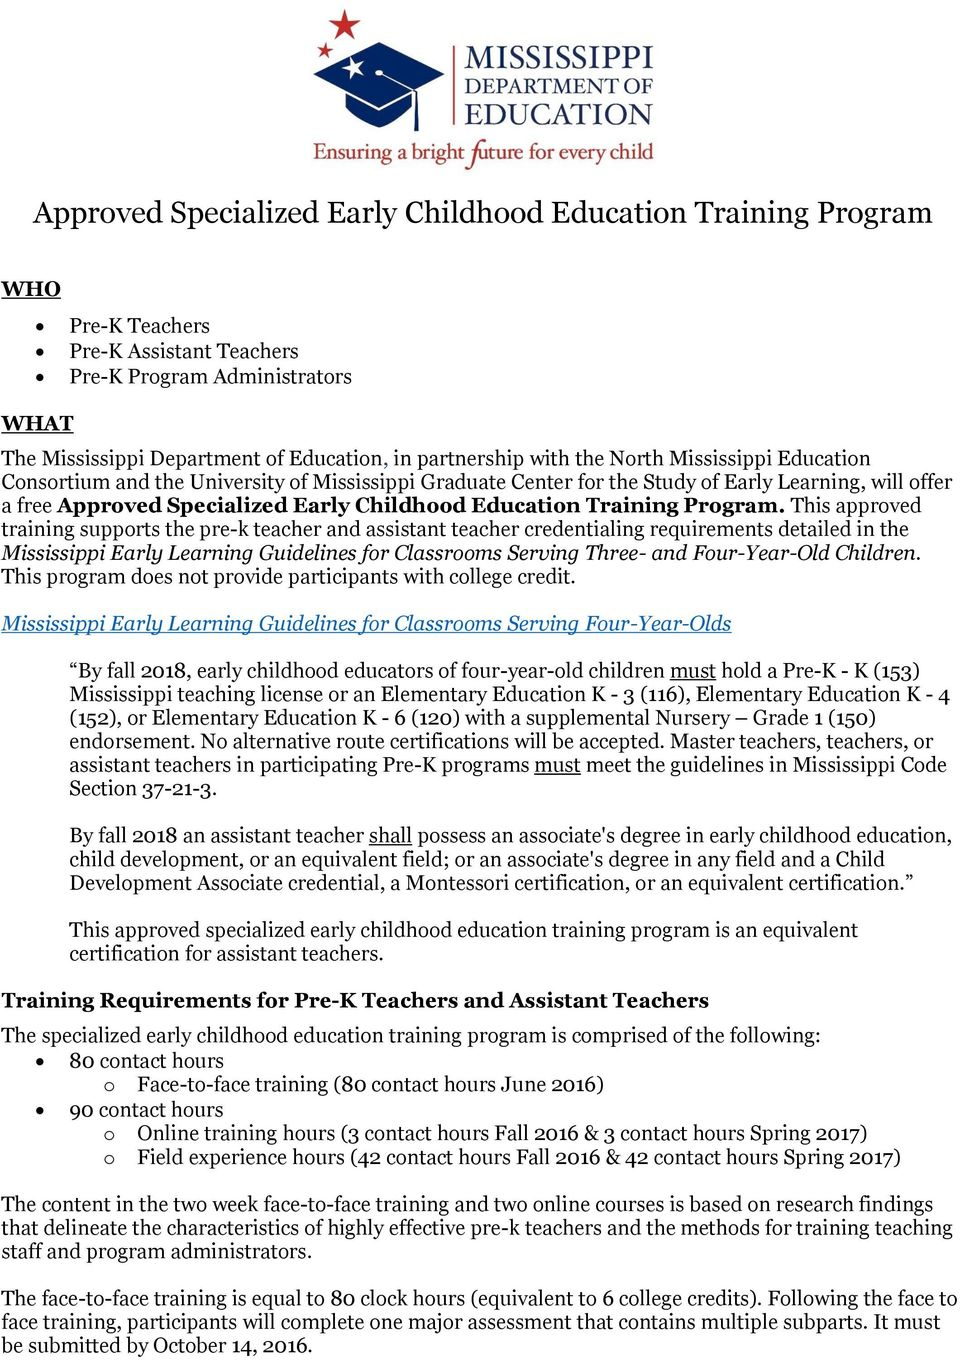 Approved Specialized Early Childhood Education Training Program Pdf